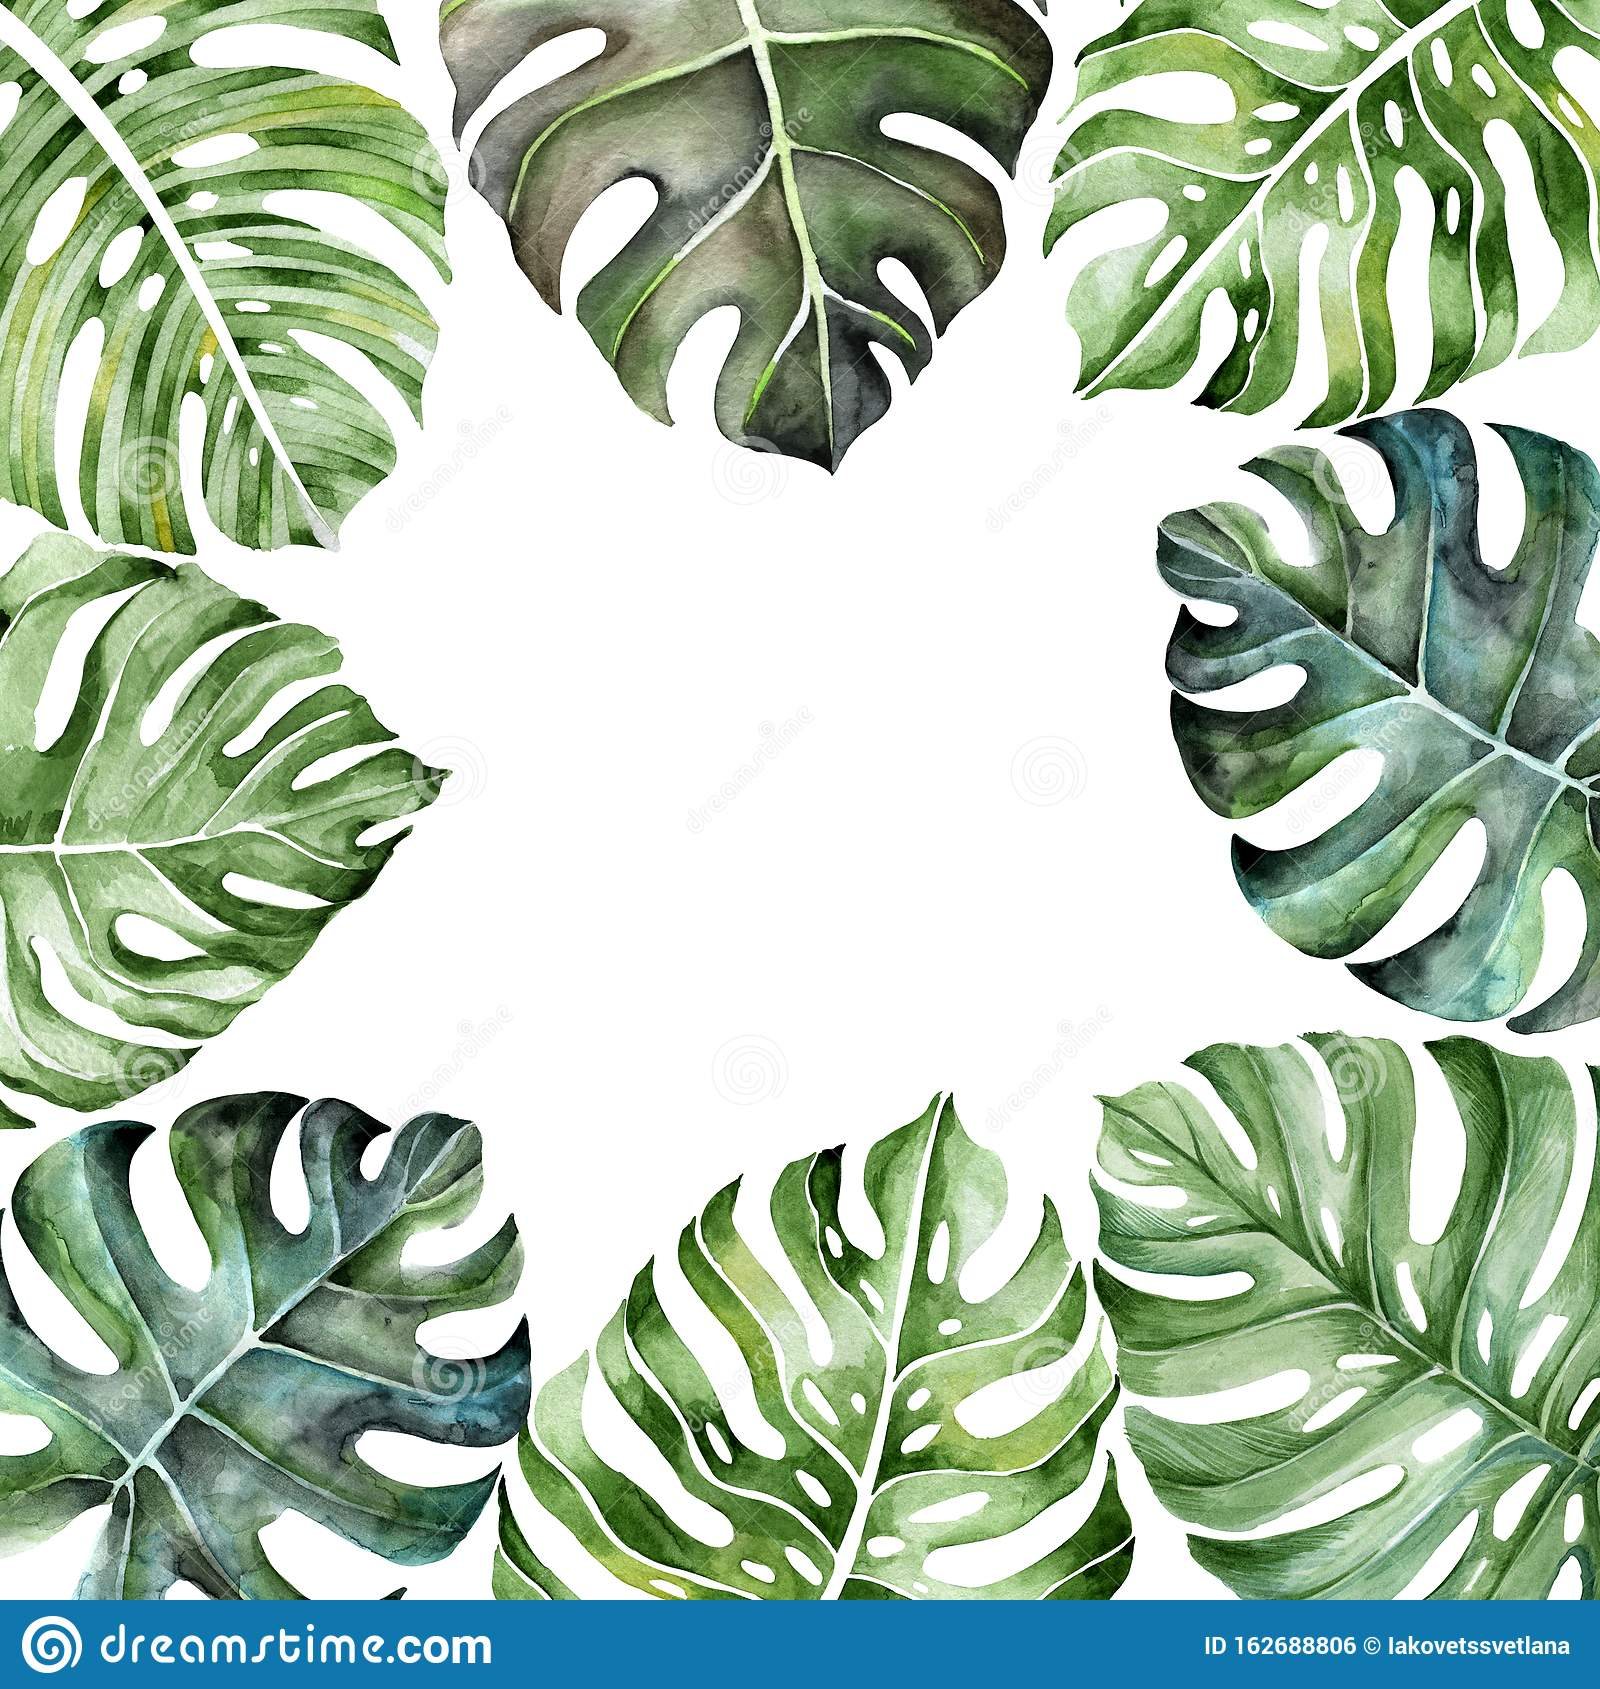 Frame Of Tropical Leaves Stock Illustration Illustration Of Leaves 162688806 Template brochure cover summer tropical with exotic palm leaves. https www dreamstime com frame tropical leaves template greeting card invitation big monstera watercolor illustration image162688806